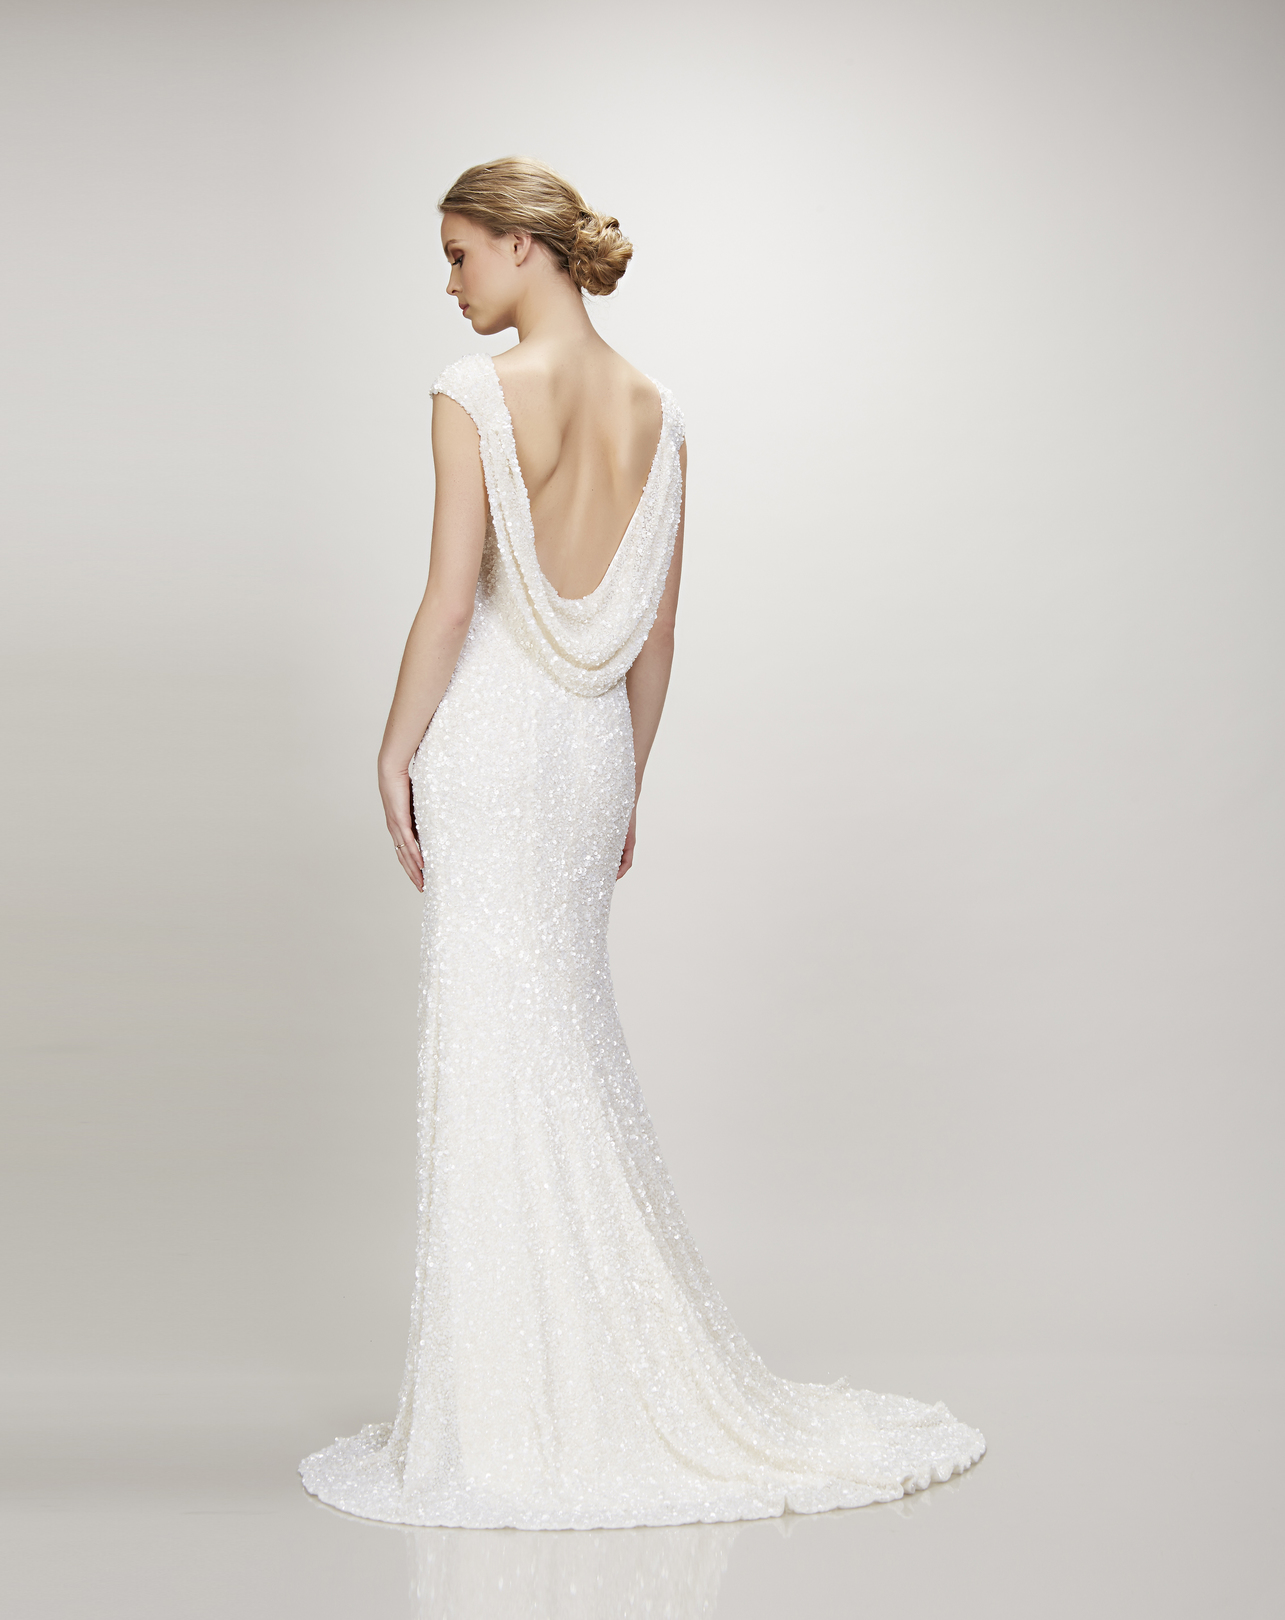 890340 hayden  dress photo